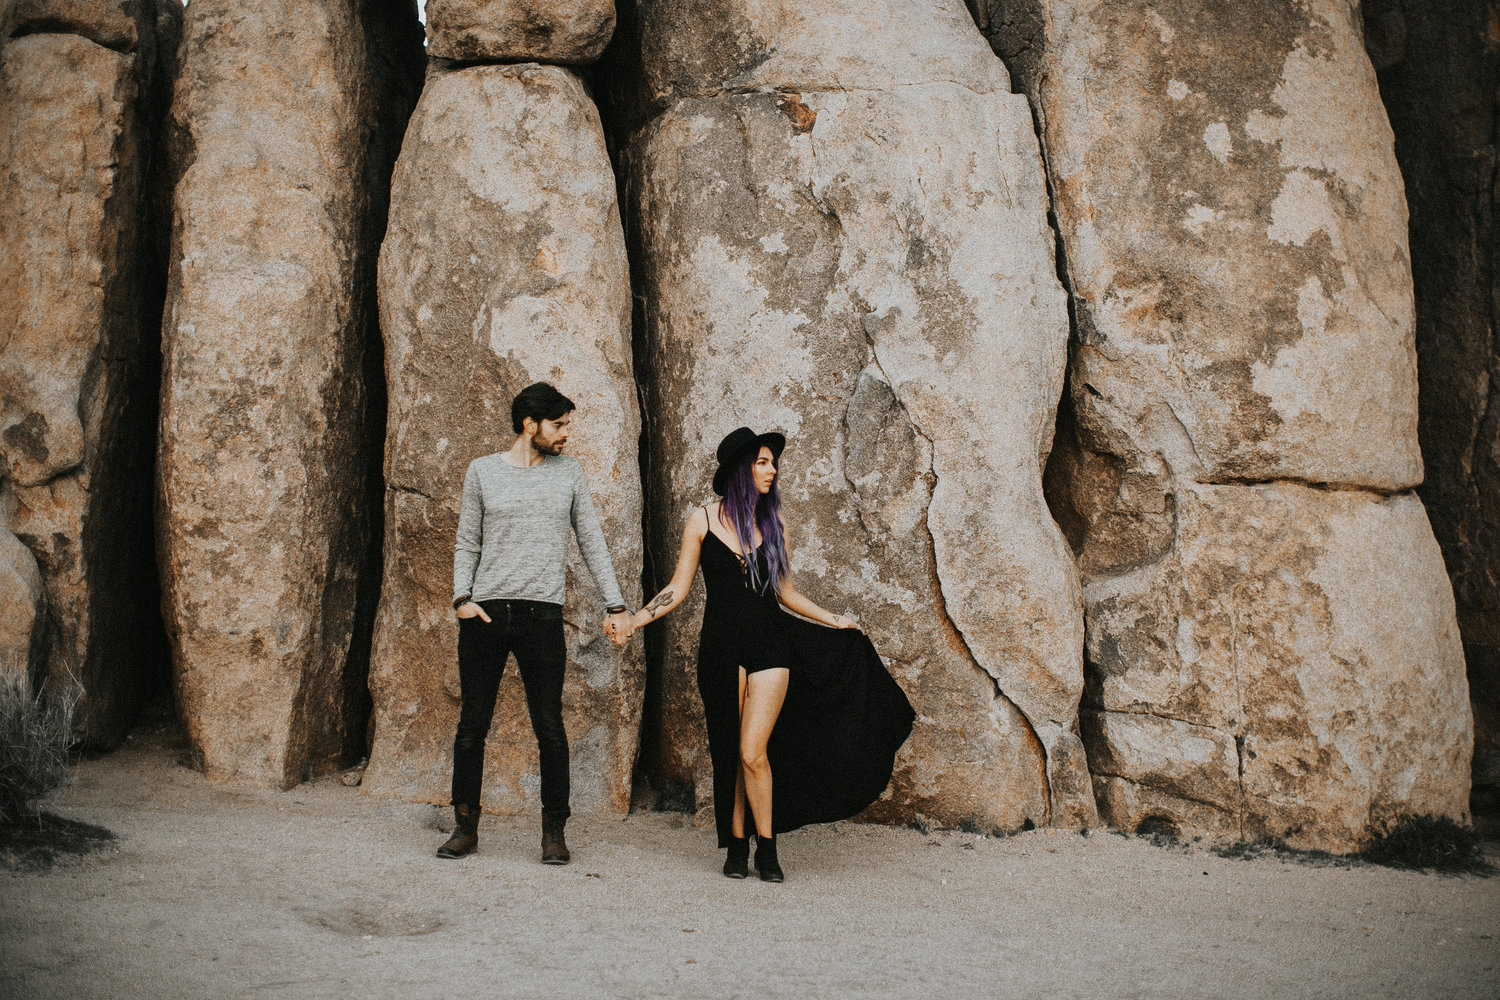 For more Joshua Tree wedding or pre-wedding photography inspiration, check out my portfolio of Skye & Taylor's  Joshua Tree engagement photos  - a magical day spent in nature.